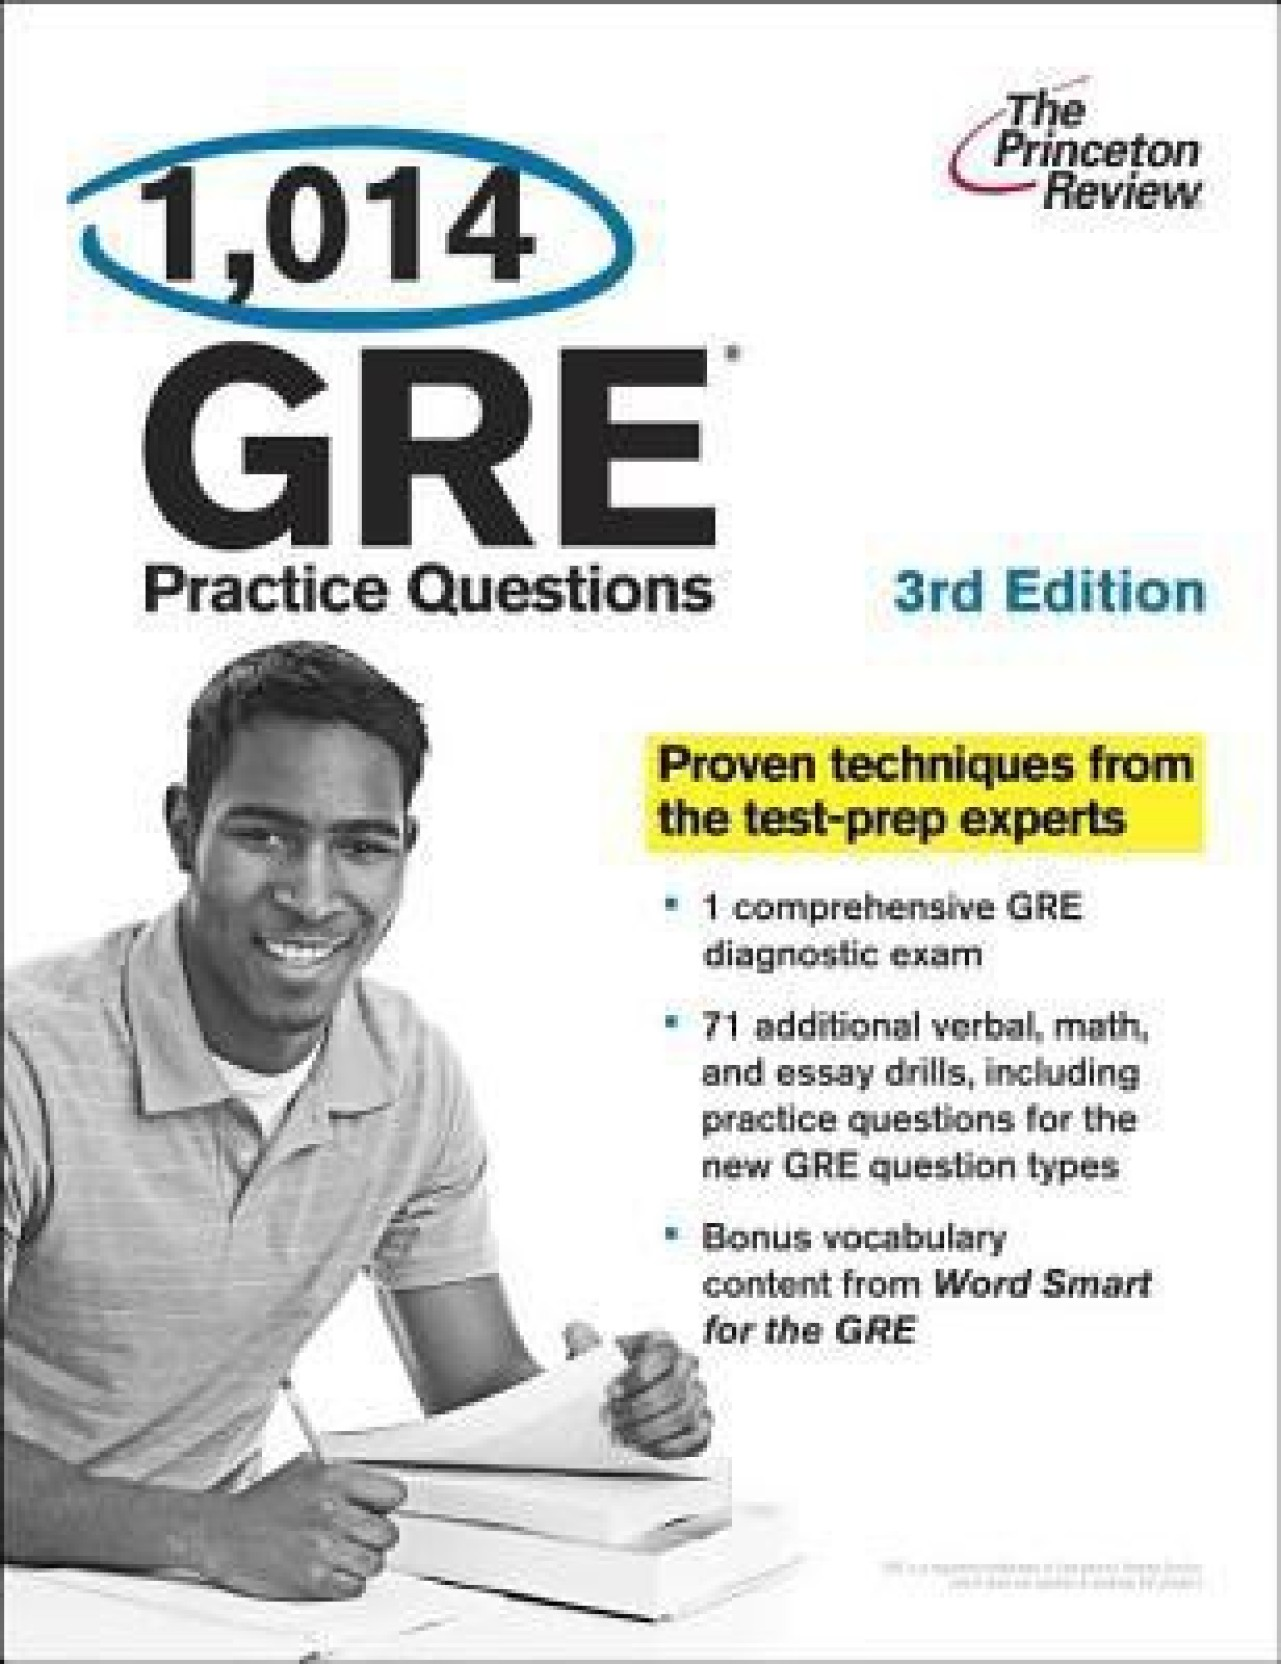 1,014 GRE Practice Questions, 3rd Edition. Home